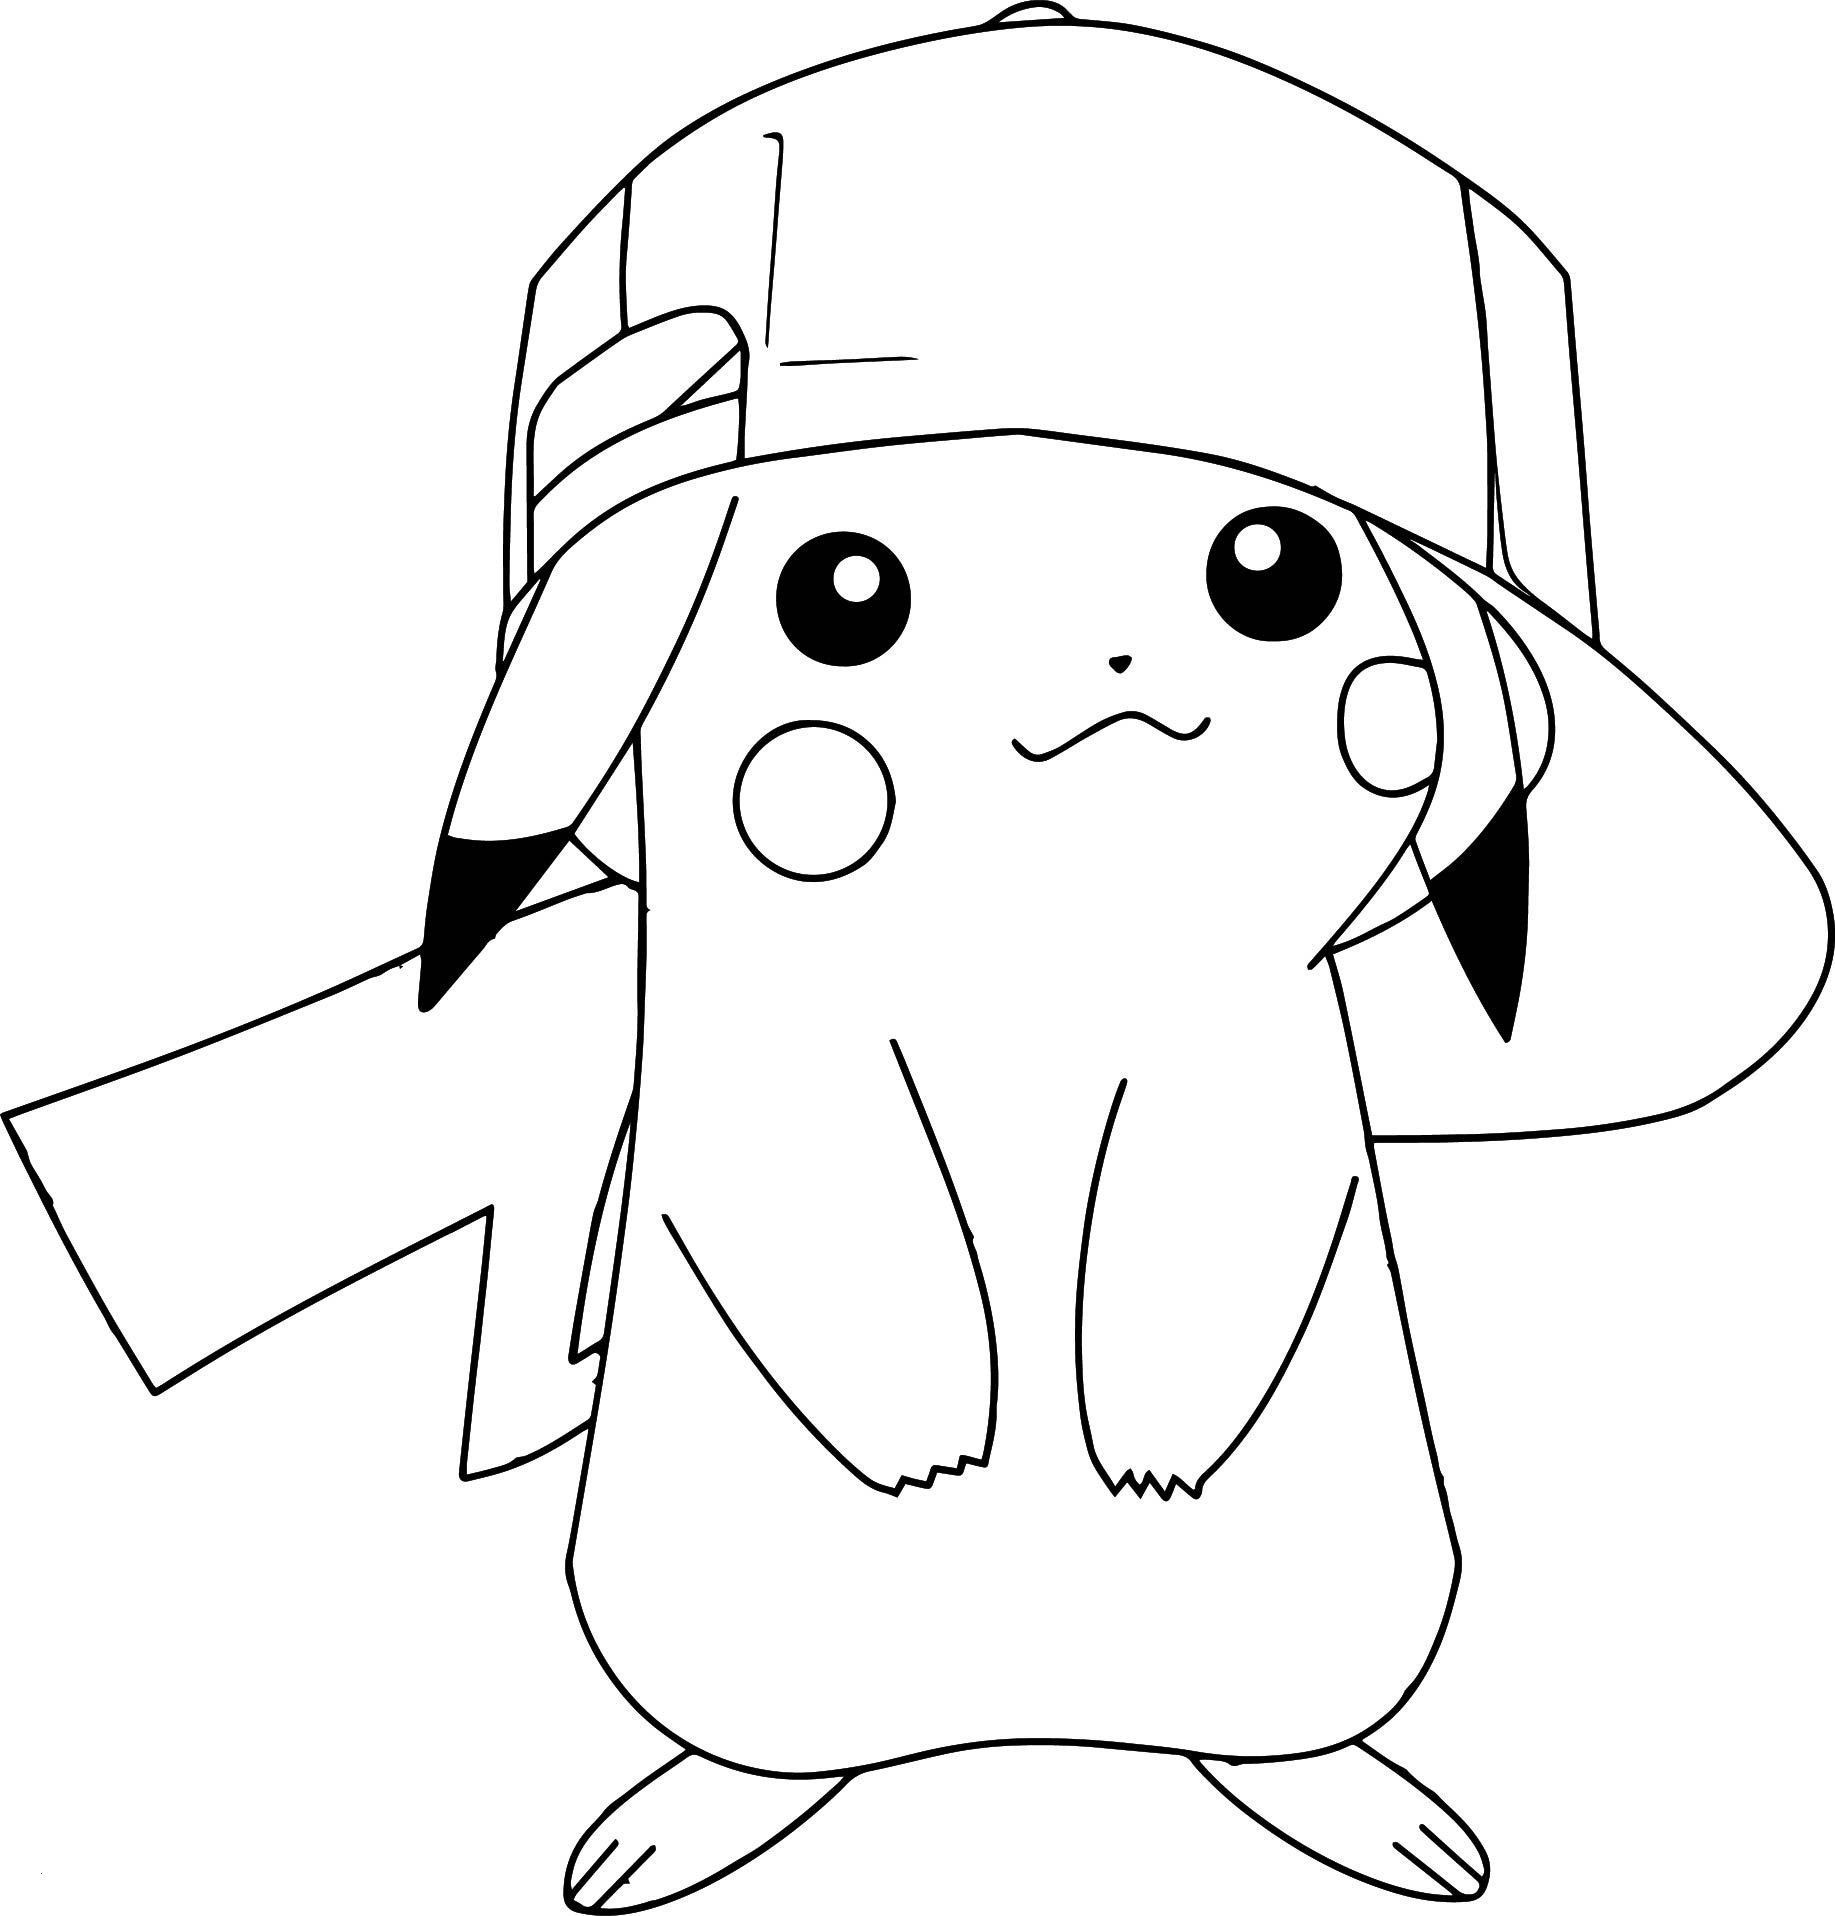 Pokemon Coloring Pokemon Coloring Pages Pikachu Coloring Page Pokemon Coloring Sheets Pikachu Coloring Page Pokemon Coloring Sheets Cartoon Coloring Pages